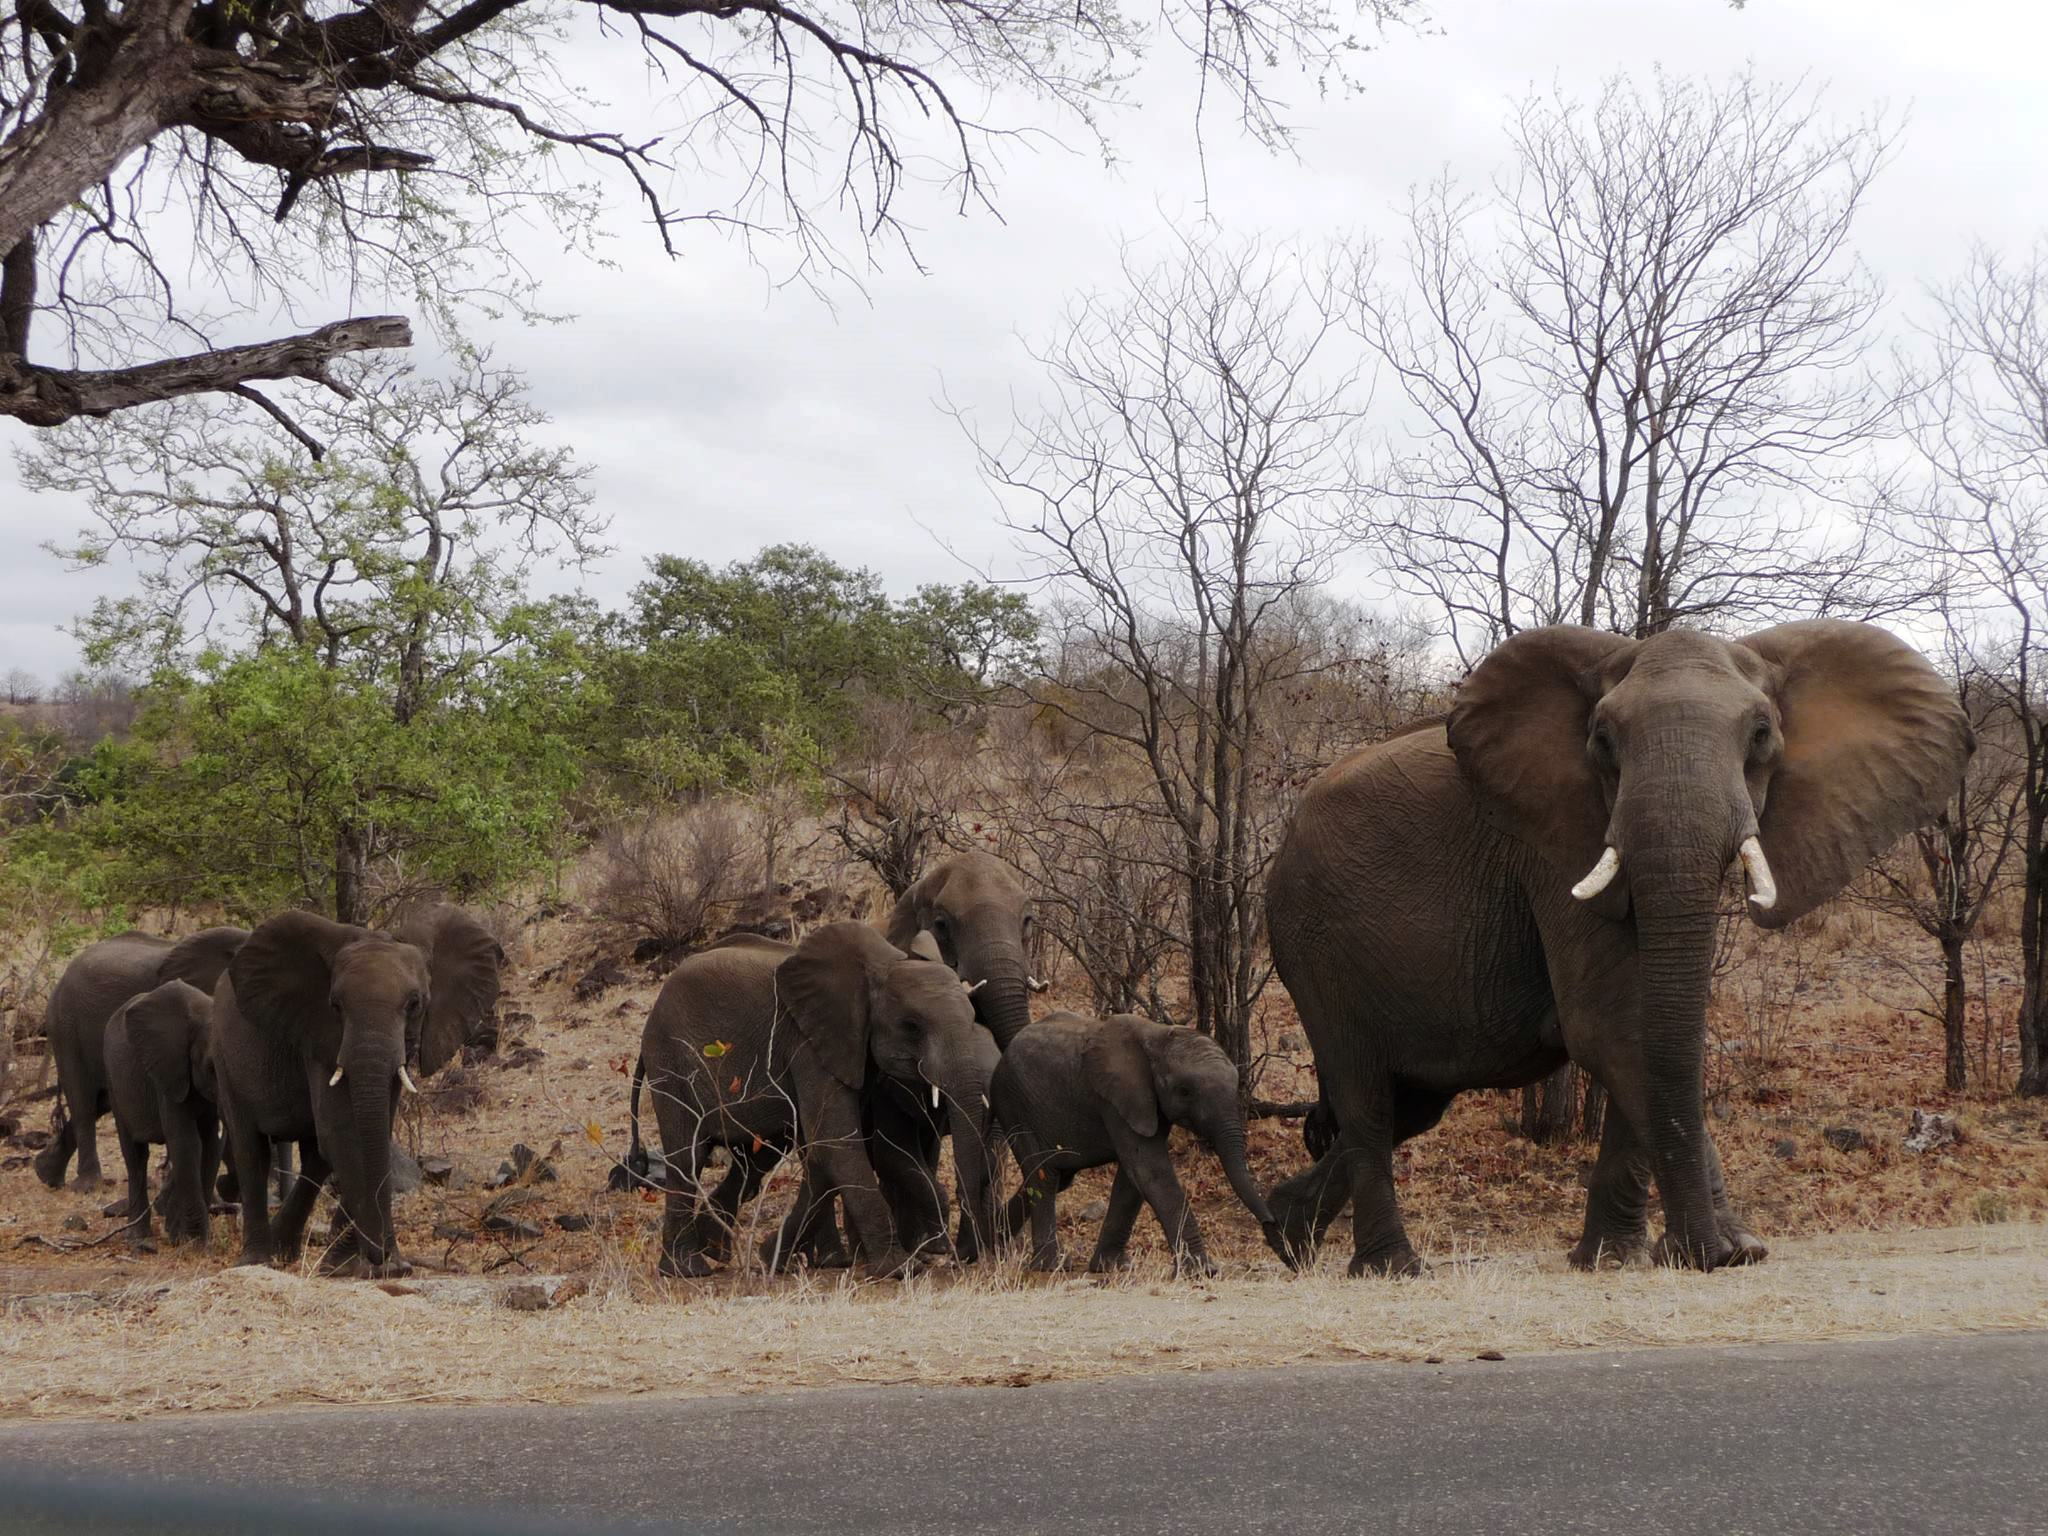 Elephants in Kruger